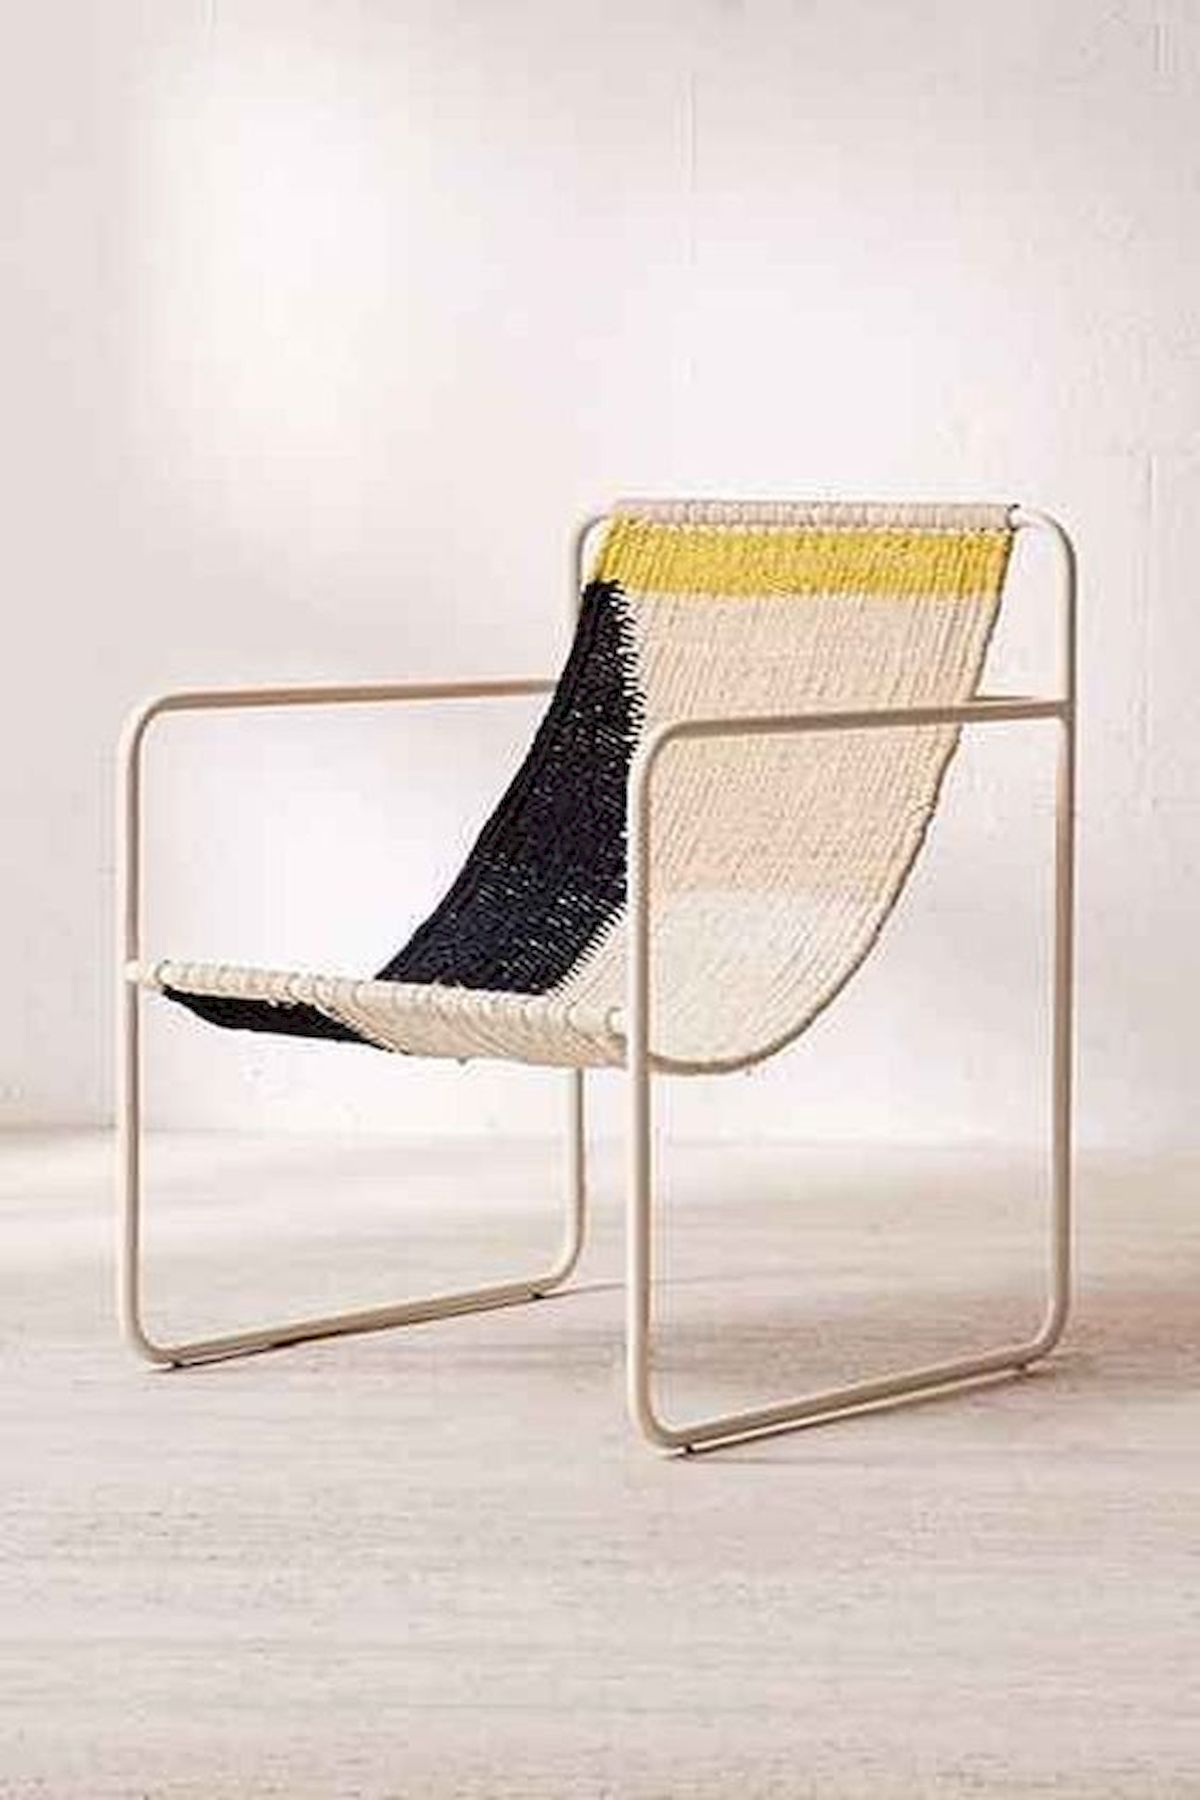 50 DIY Relaxing Chairs Design Ideas That Will Make Your Home Look Great (48)